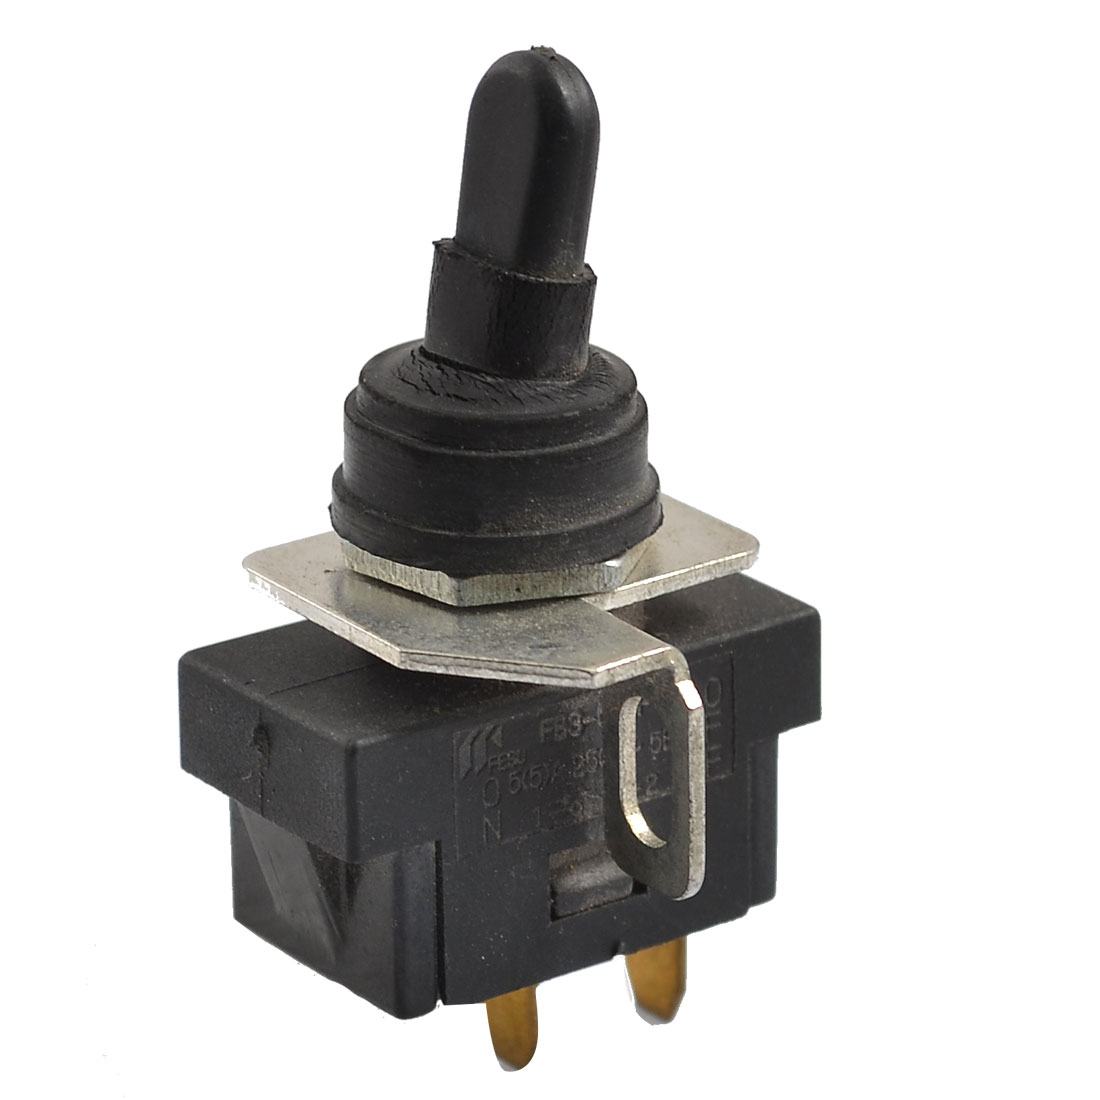 AC 250V 5A 2 Terminals ON OFF Power Tool Toggle Switch for Angle Grinder